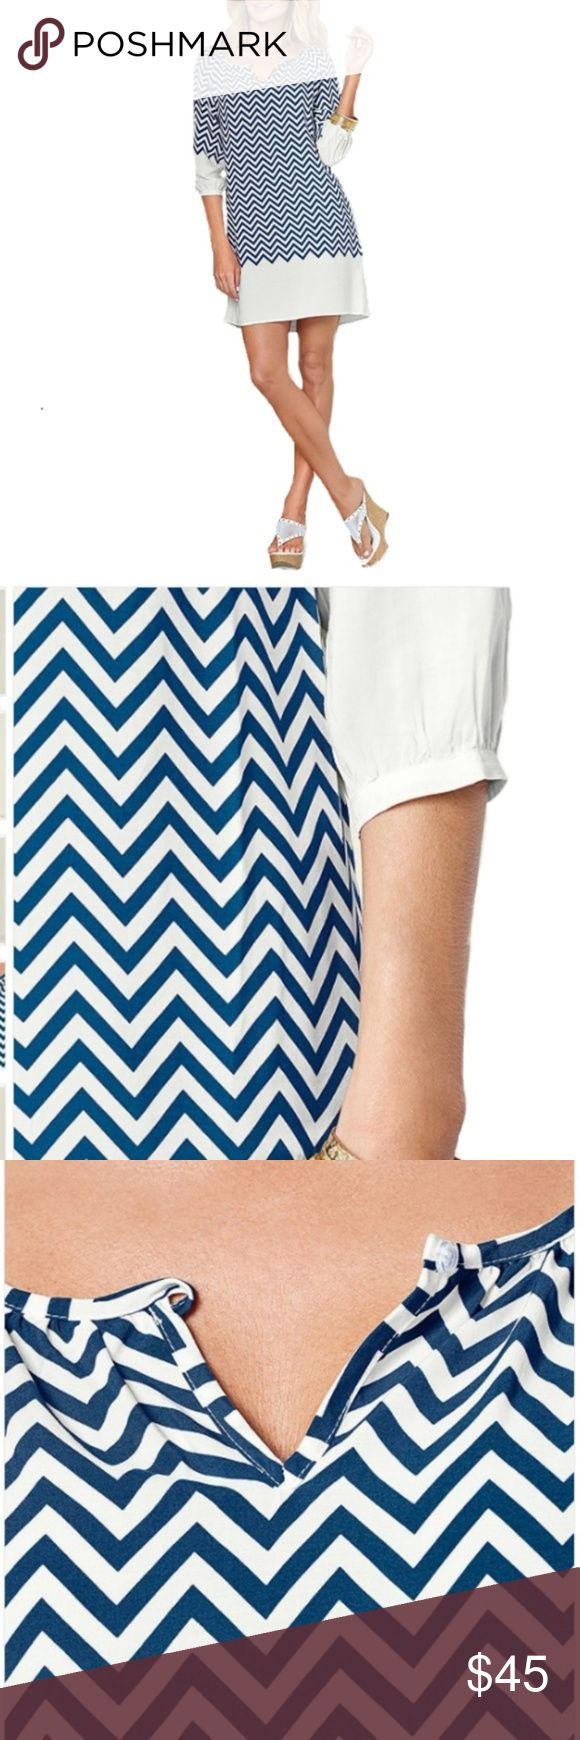 Chevron Print Dress Beautiful chevron print dress gently worn A-line dress is complete with split neck and 3/4 length sleeves with buttons on wrists. VENUS Dresses